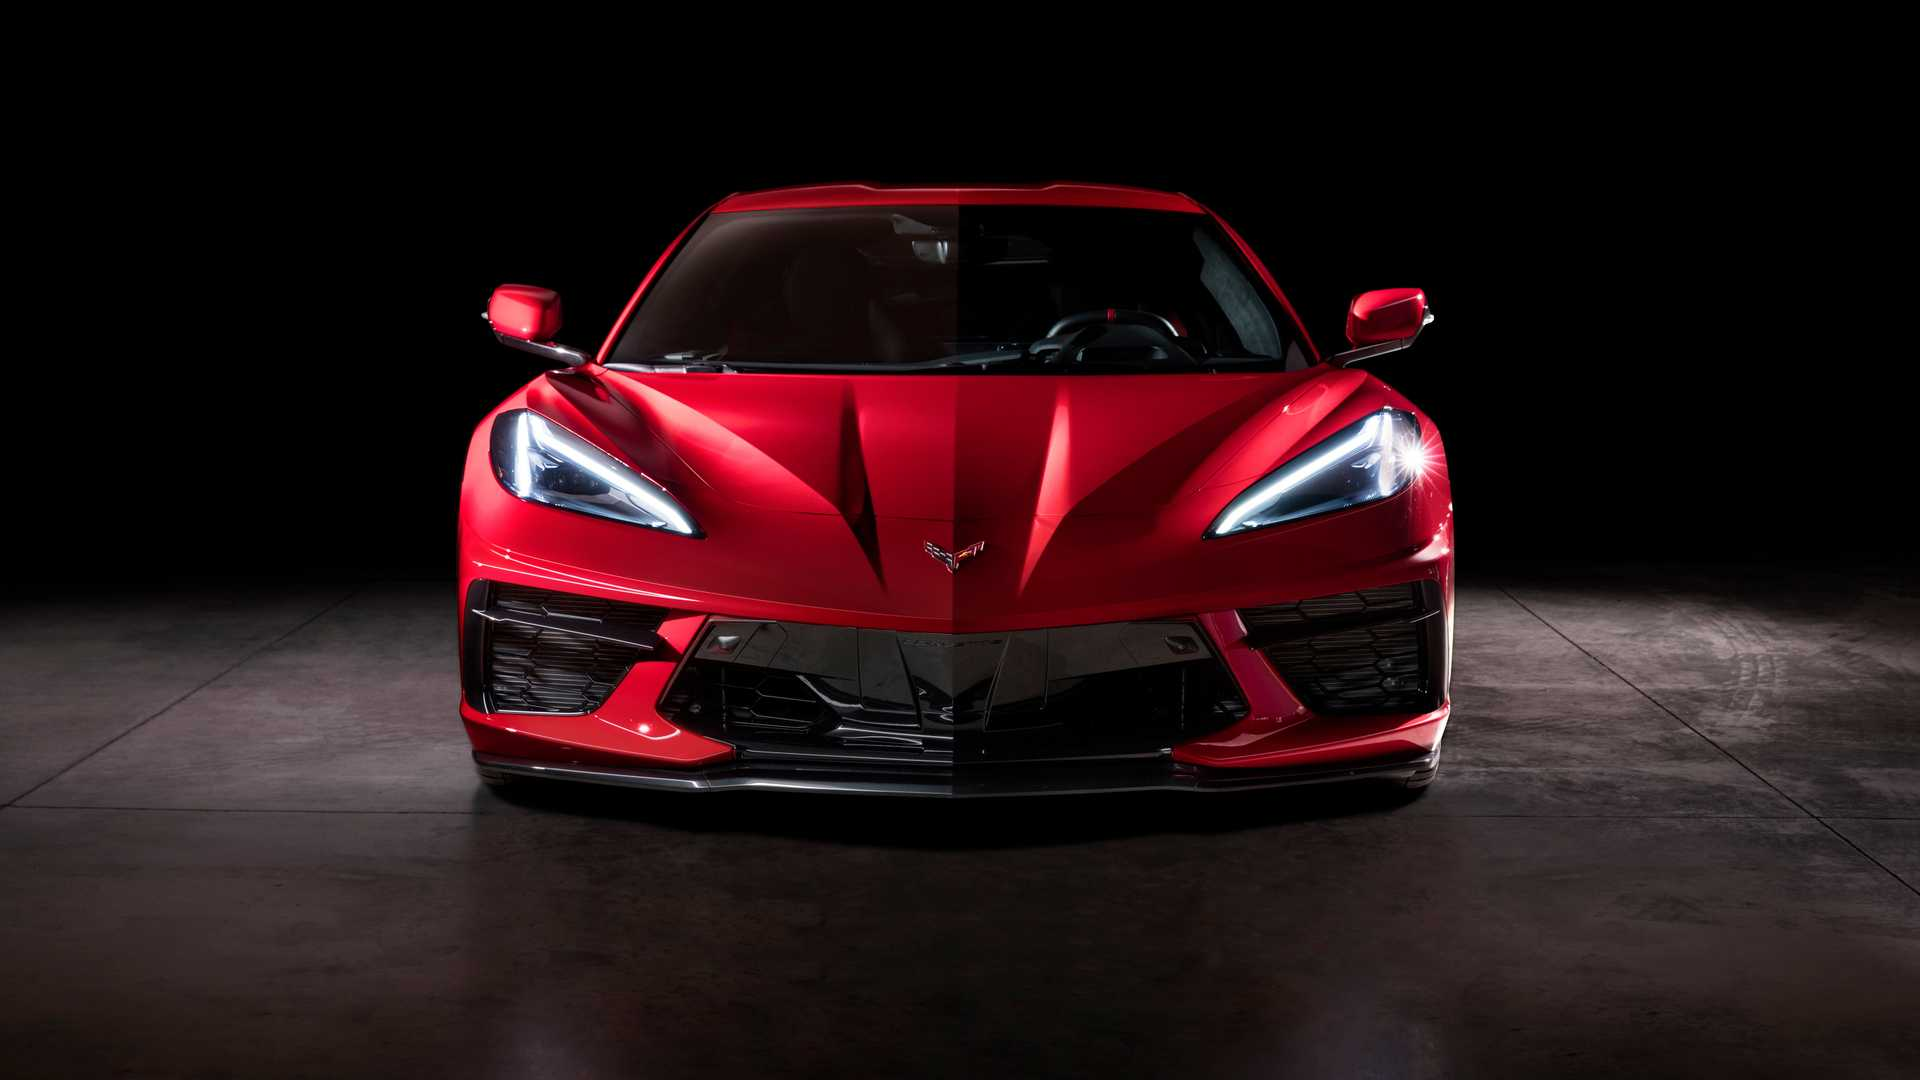 2020-chevrolet-corvette-stingray-27